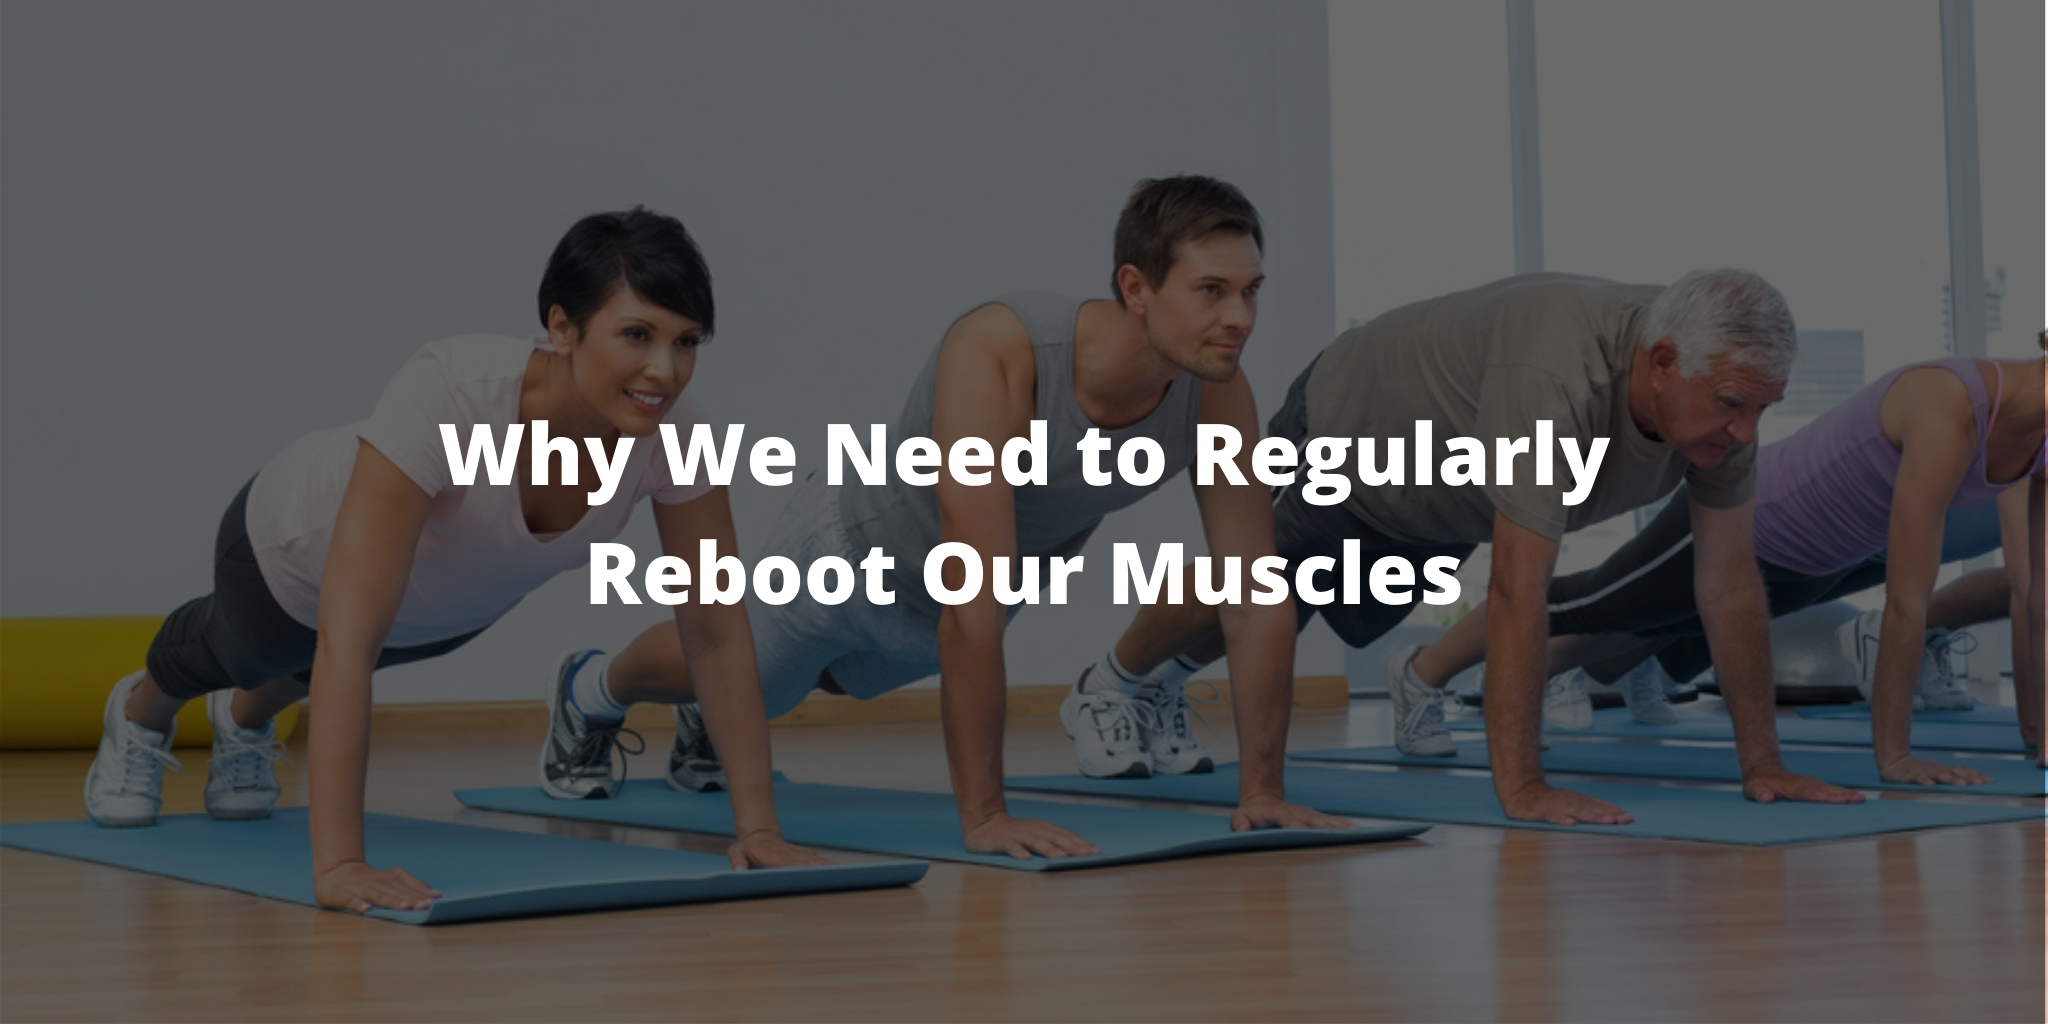 Why We Need to Regularly Reboot Our Muscles